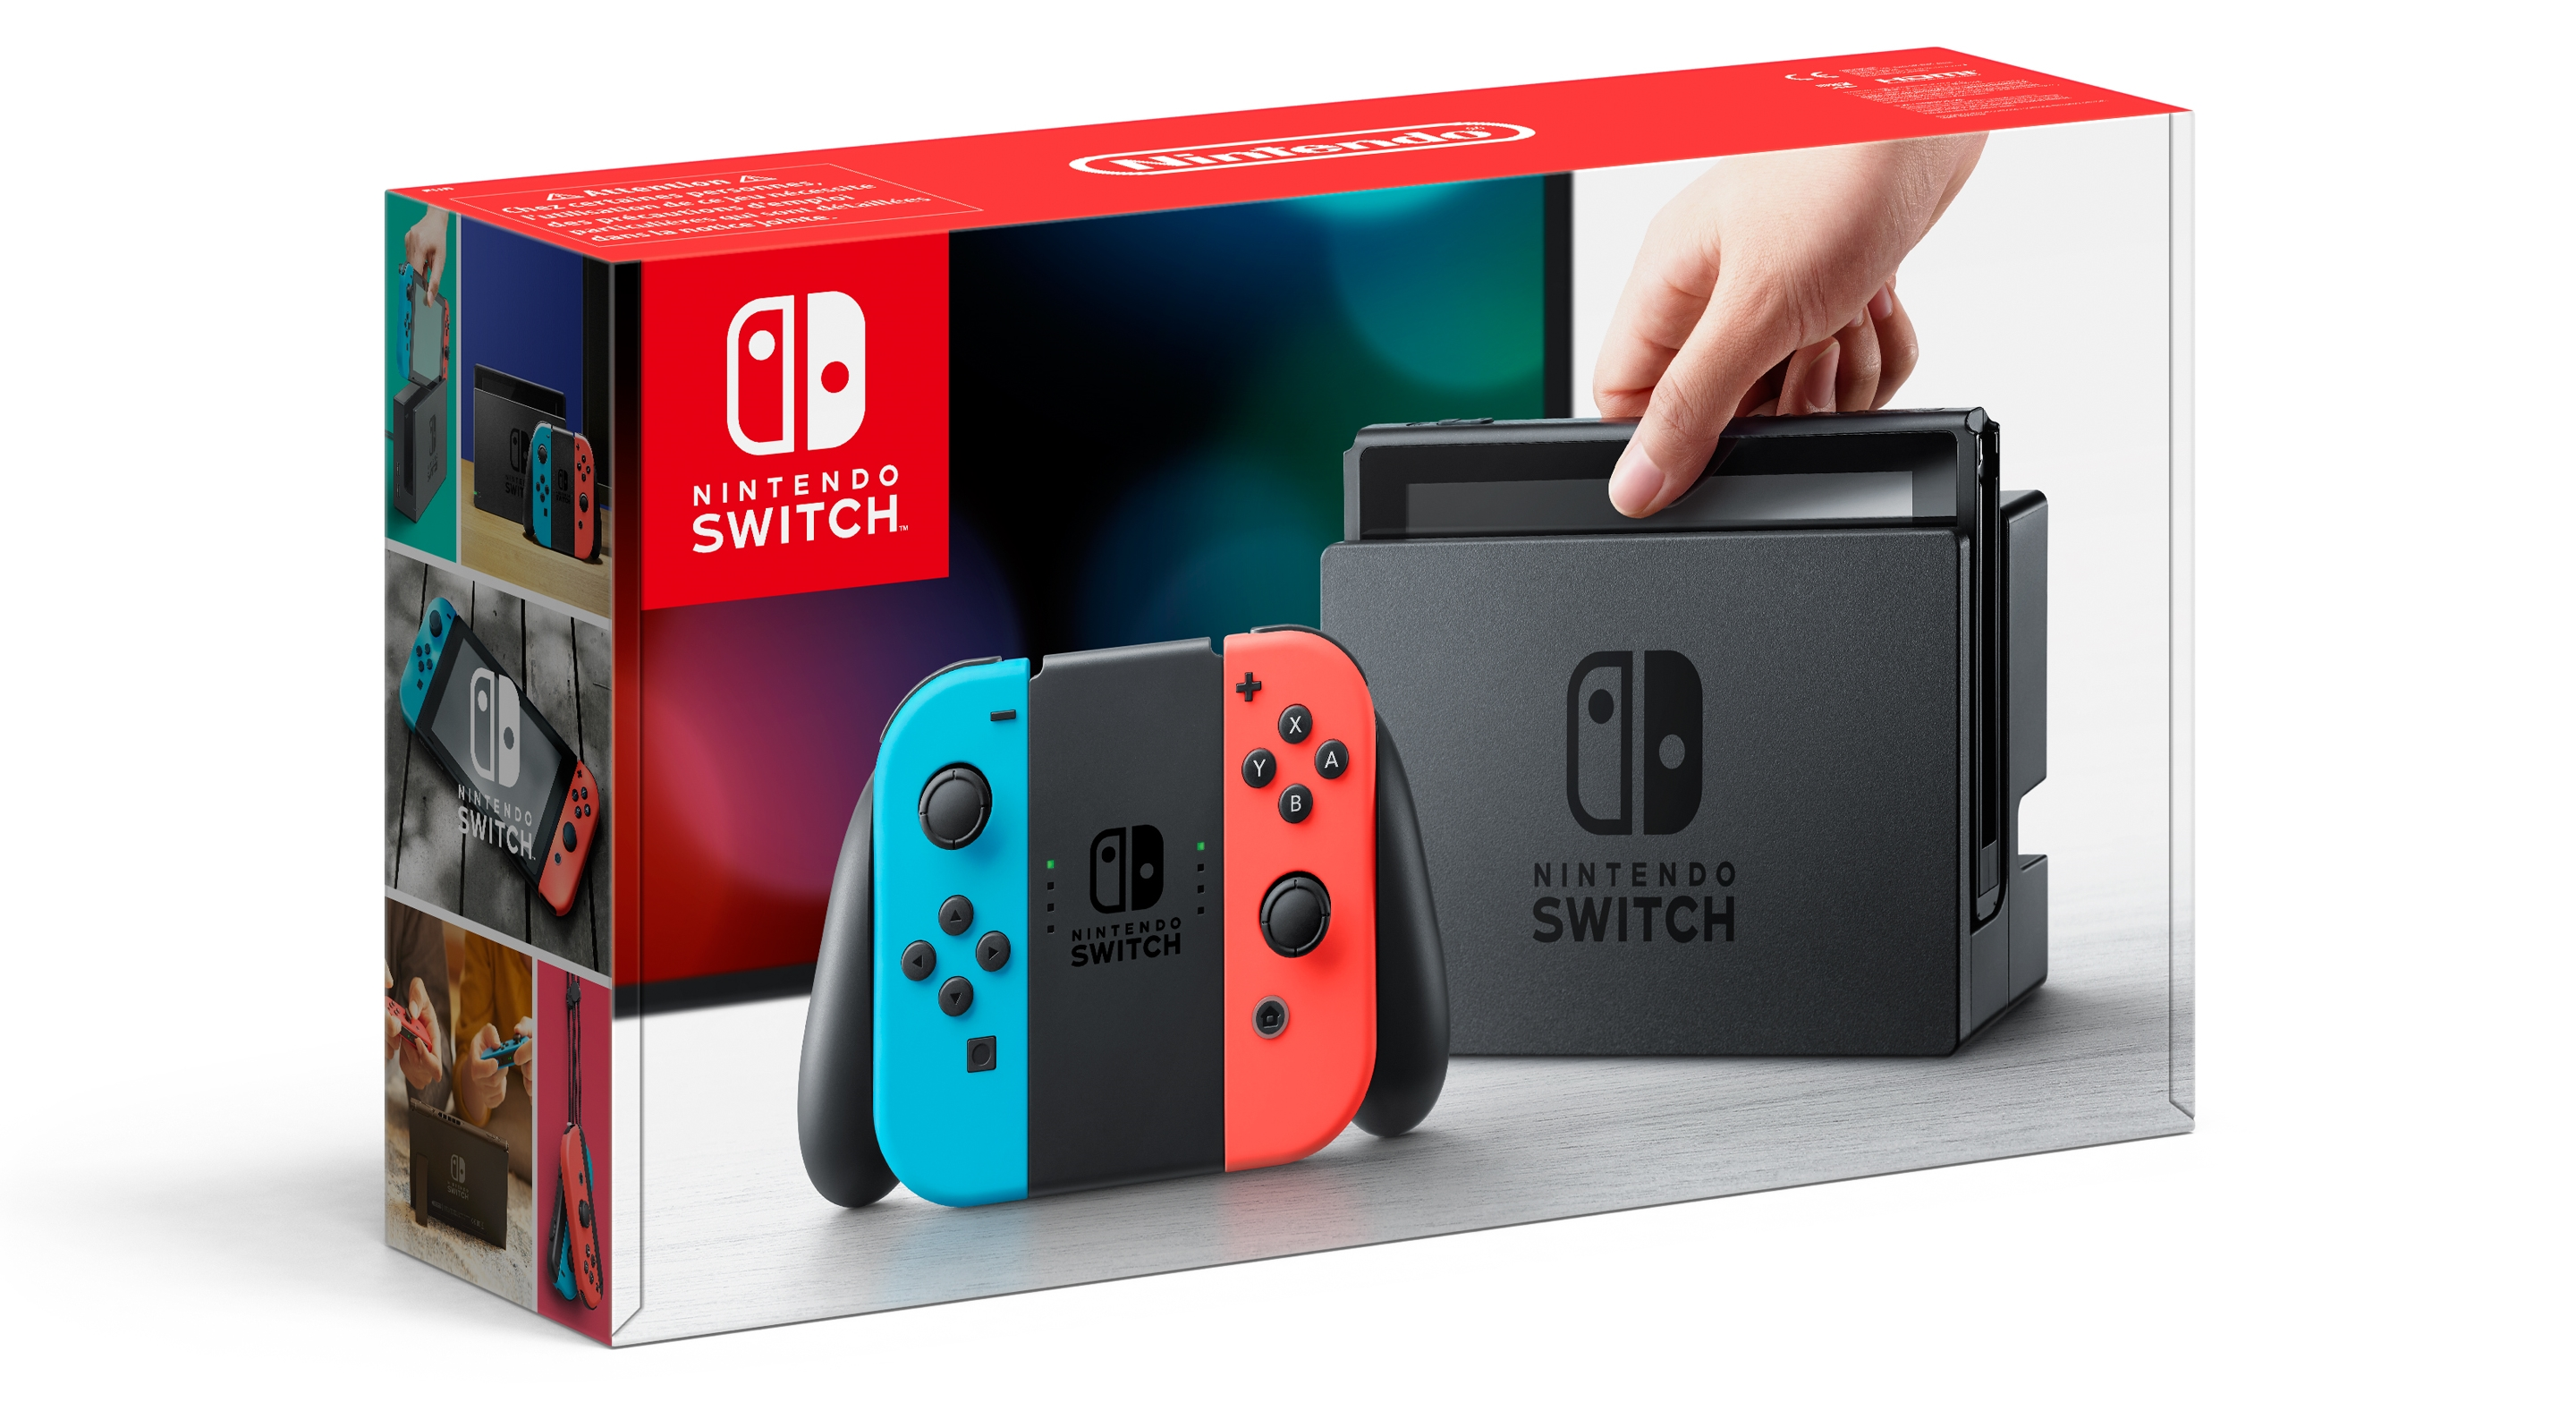 Nintendo Switch was best-selling console in US during January